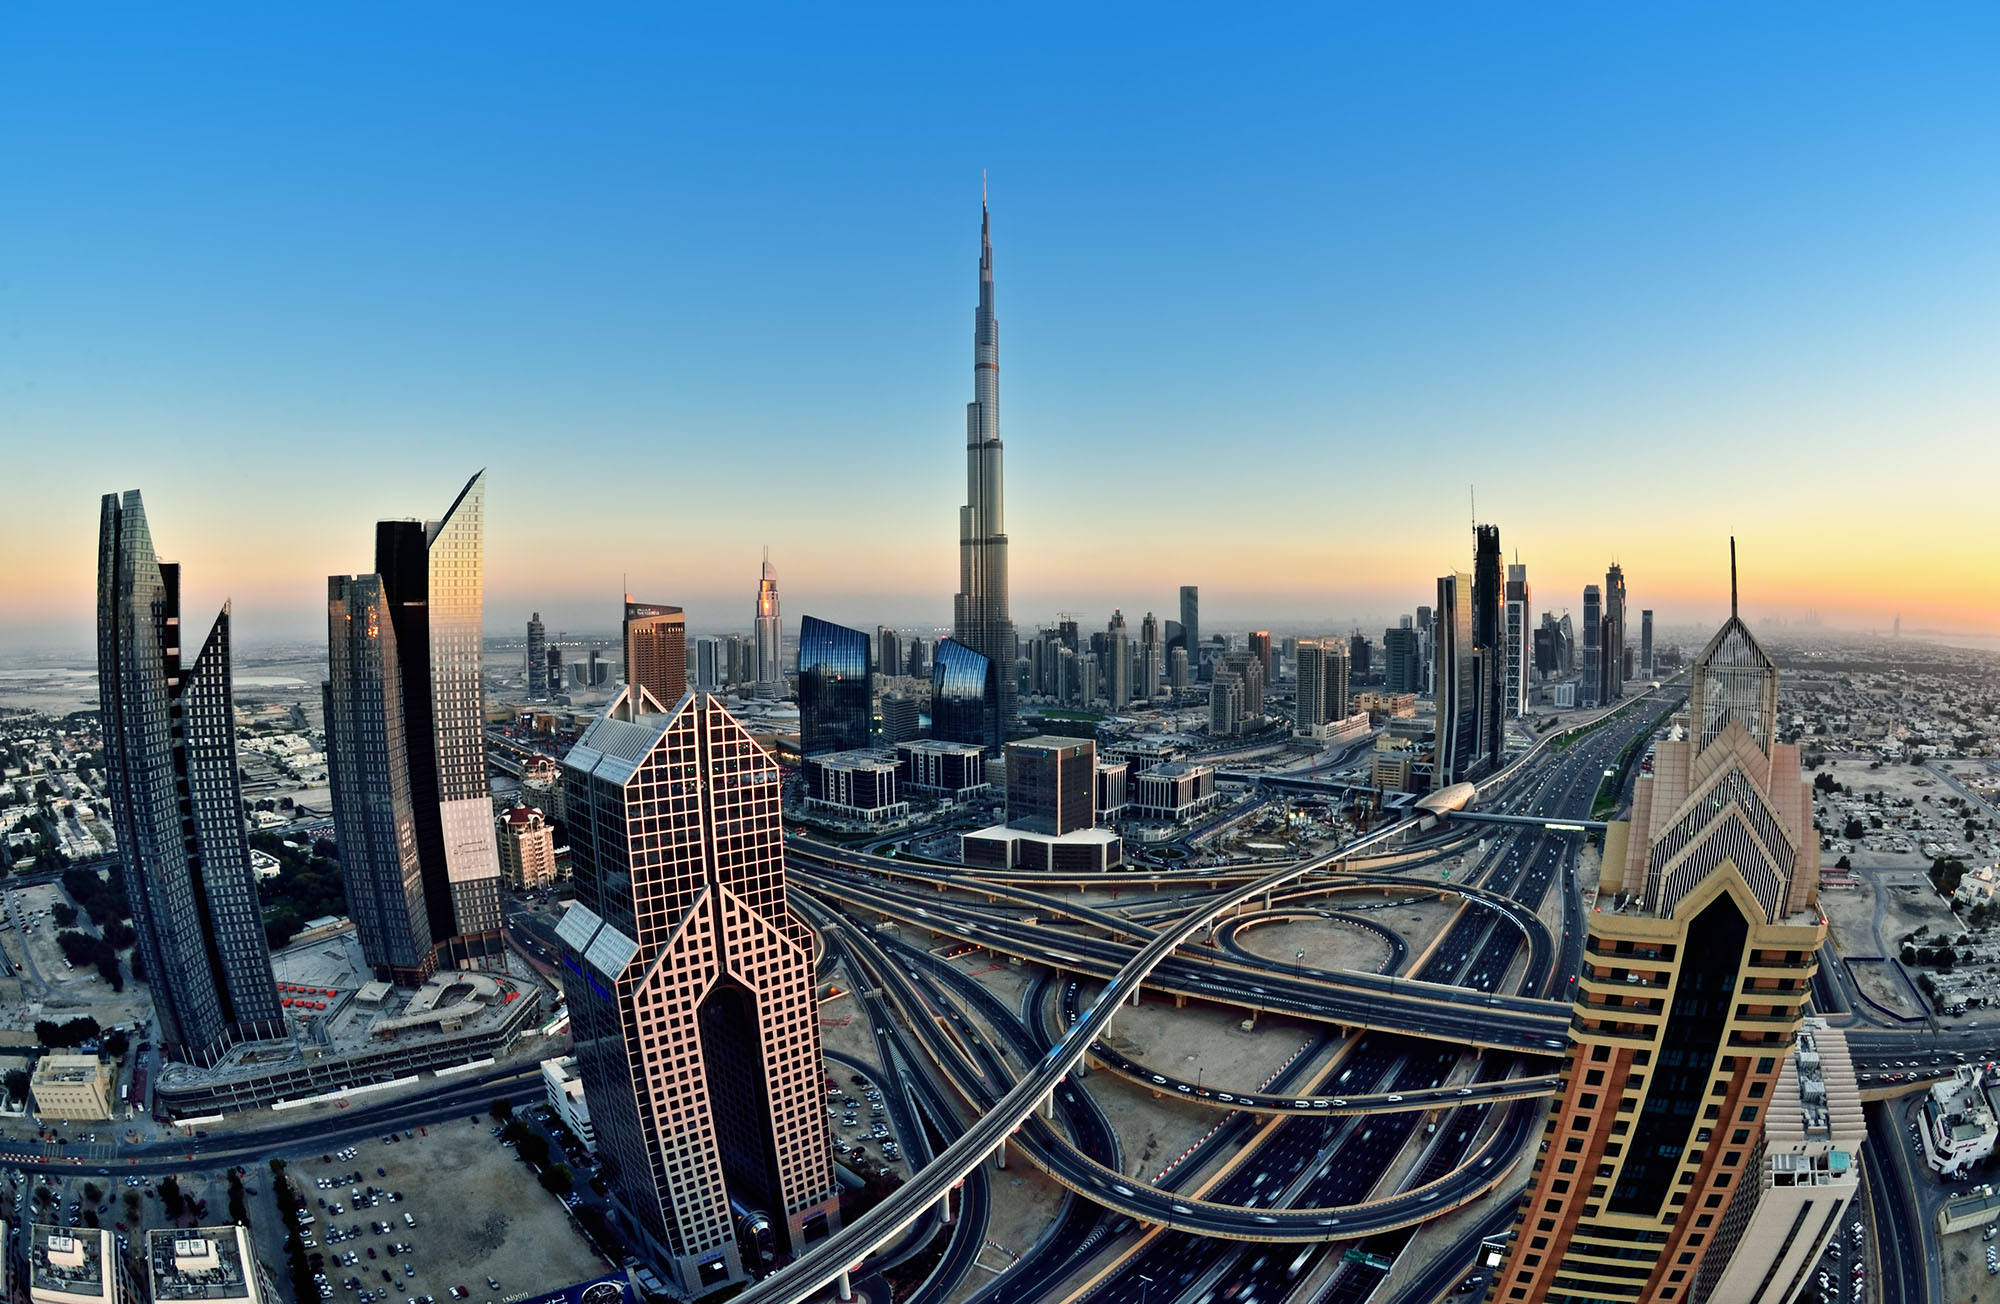 DowntownDubai داون تاون دبى وسط دبى